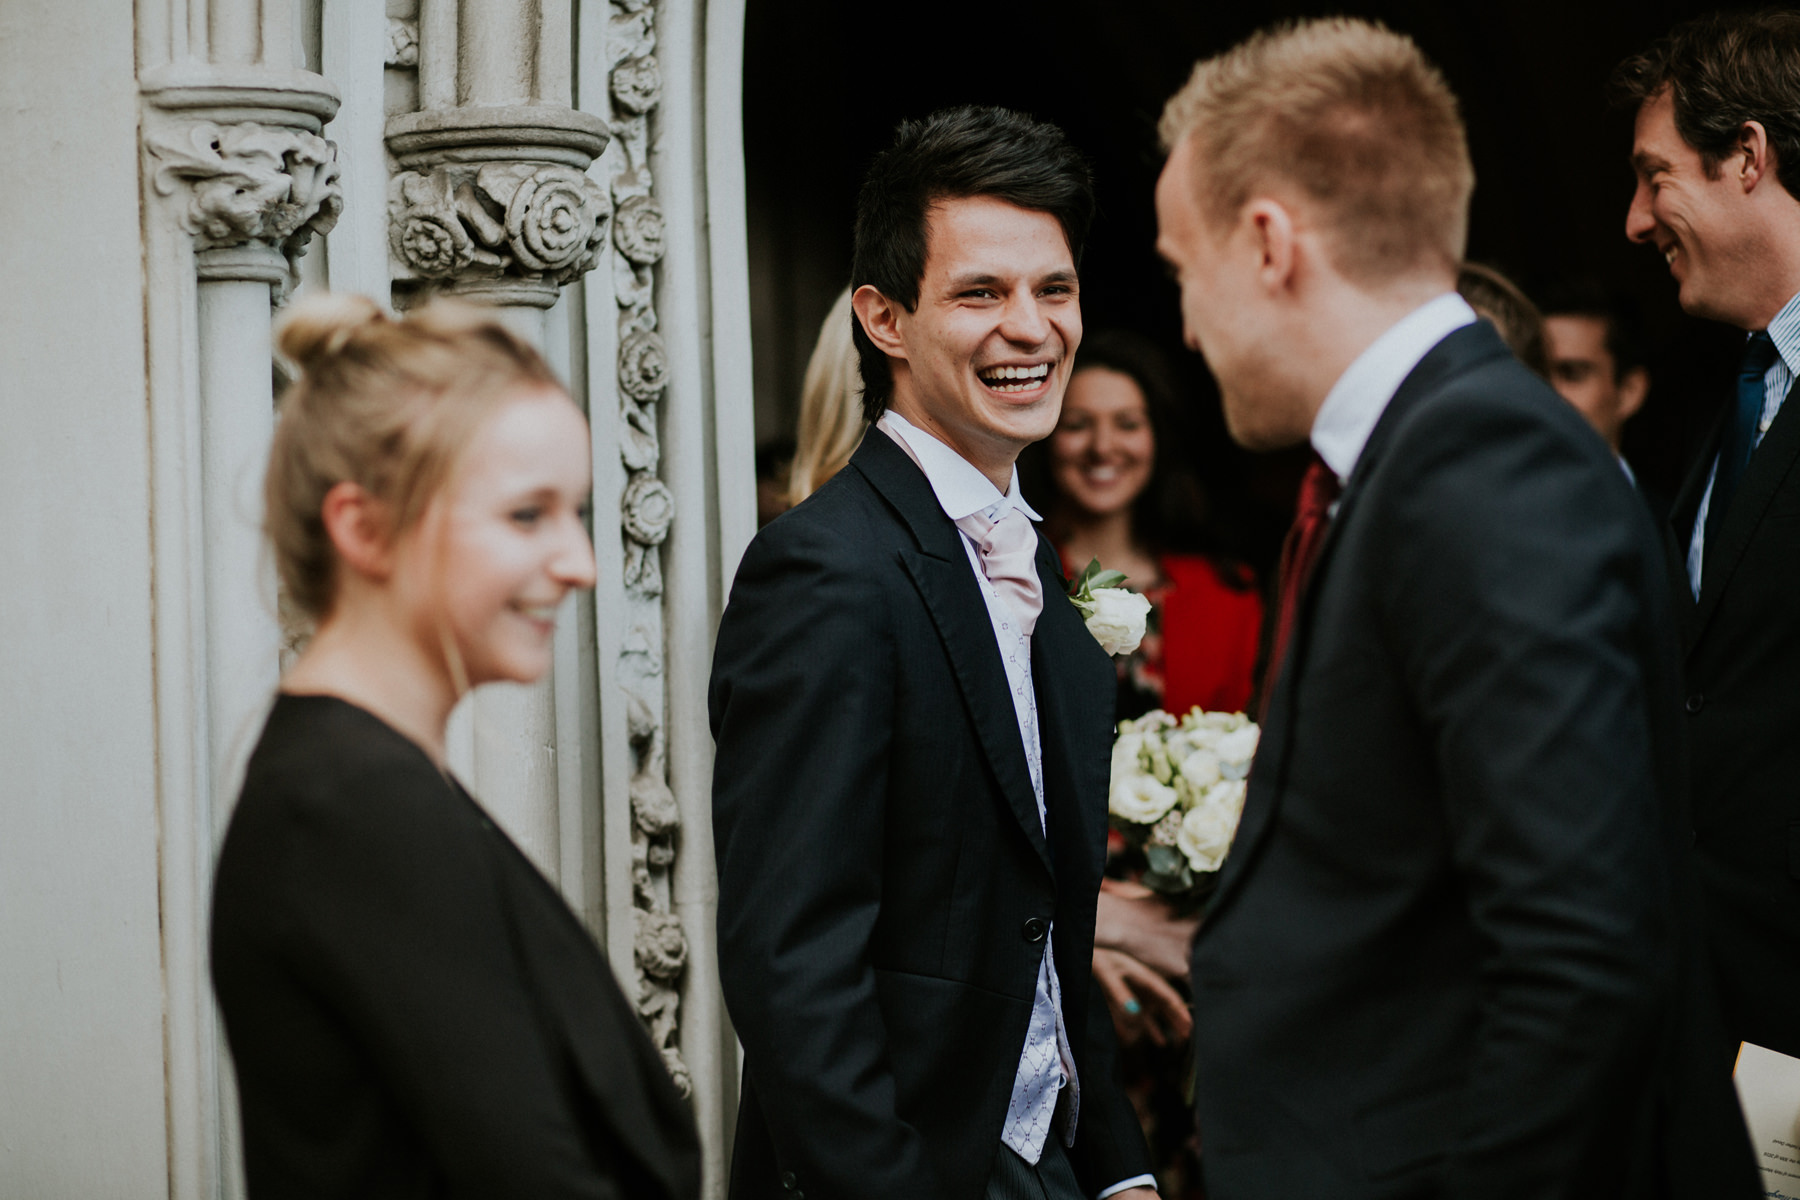 LD-324-groom-laughing-outside-church-London.jpg